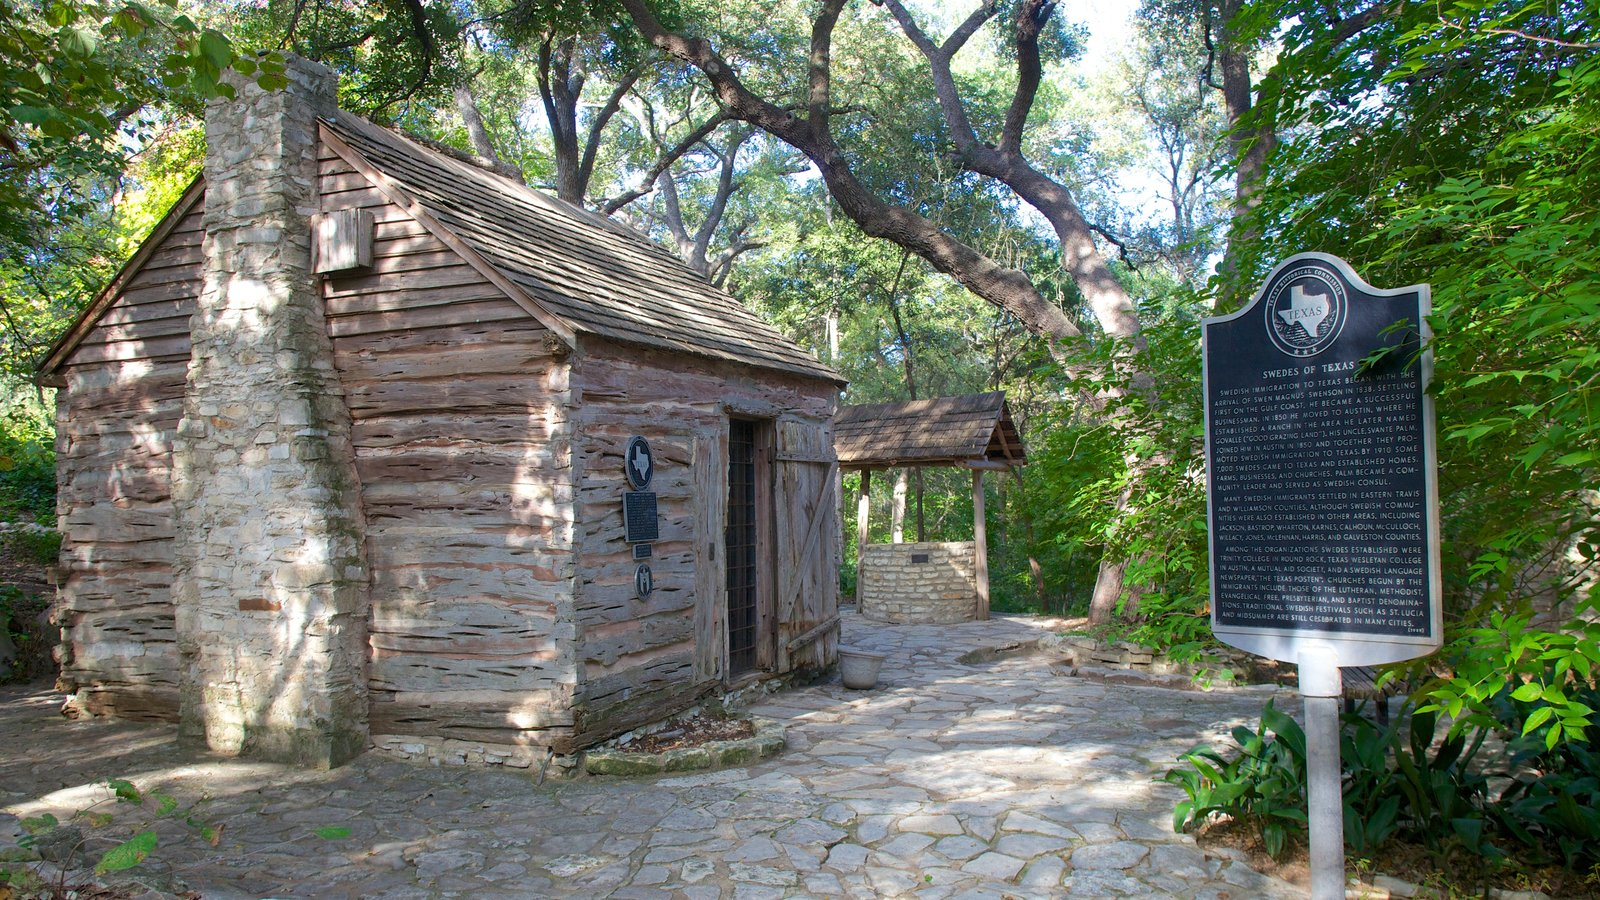 Austin showing heritage architecture, landscape views and a house